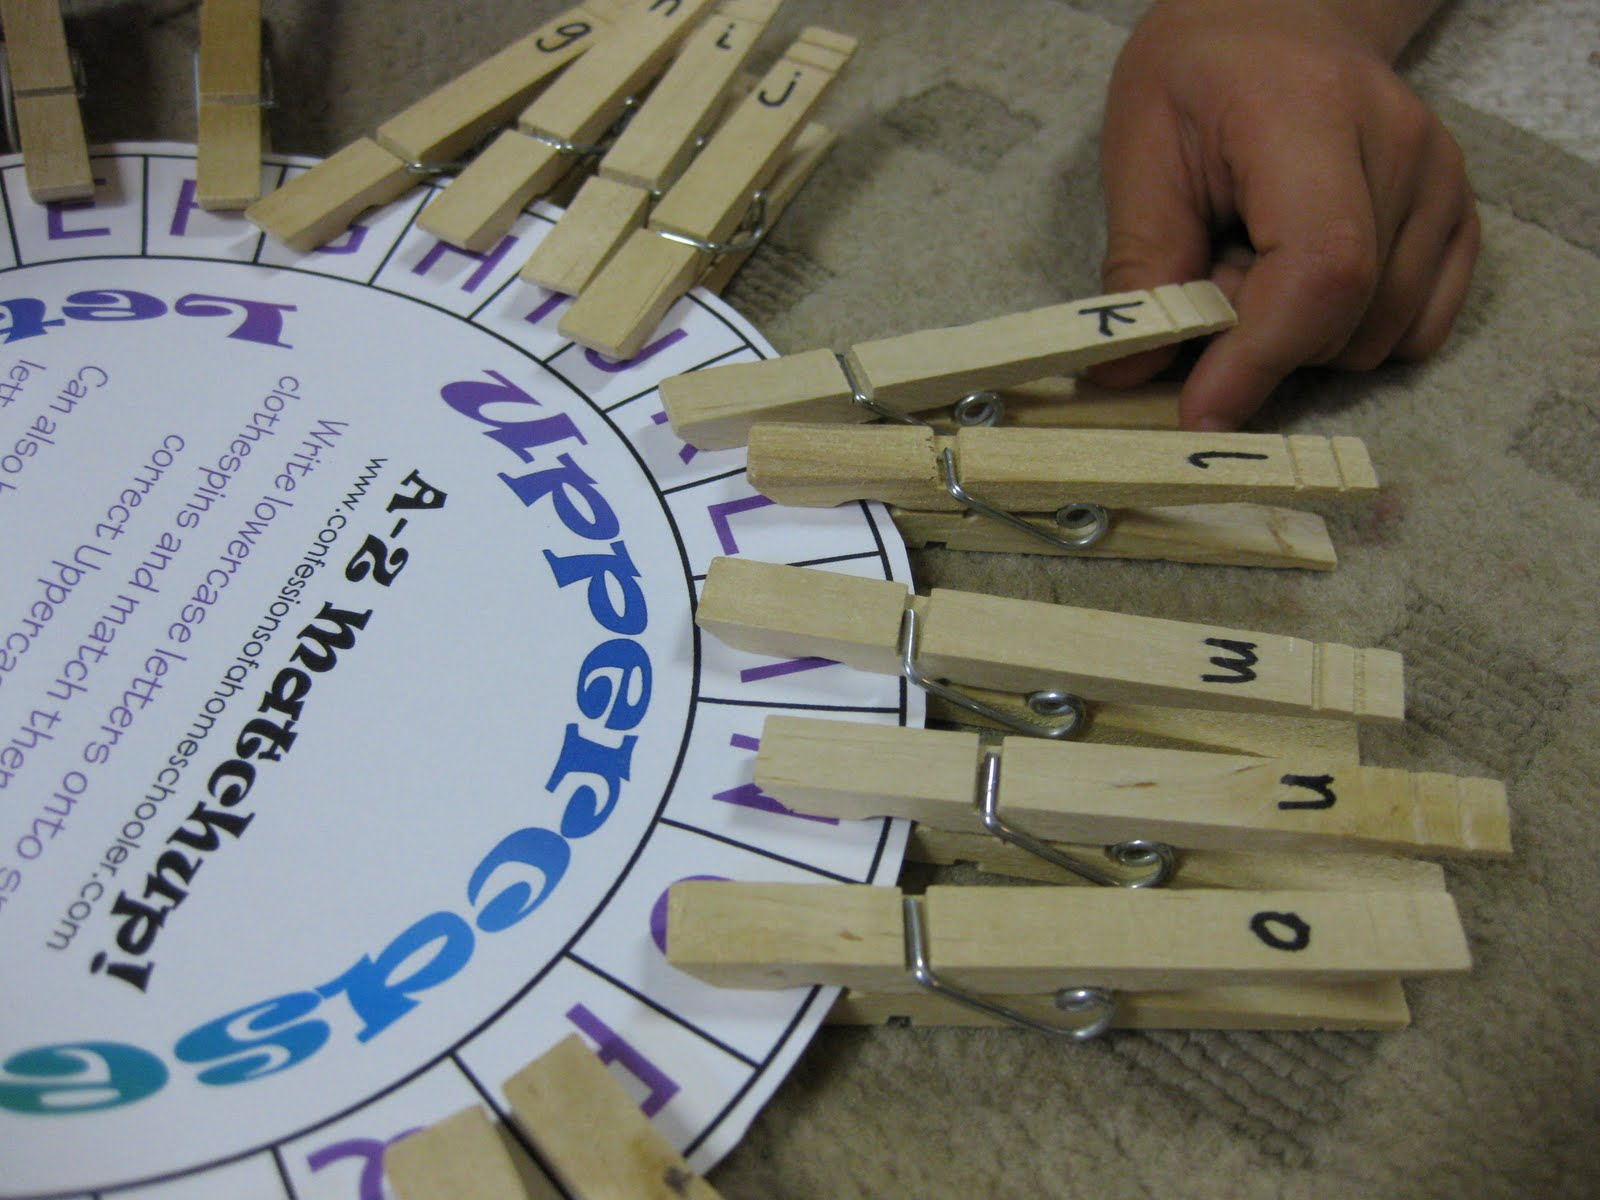 owen matches lowercase clothespins to uppercase letters on With clothespin letters